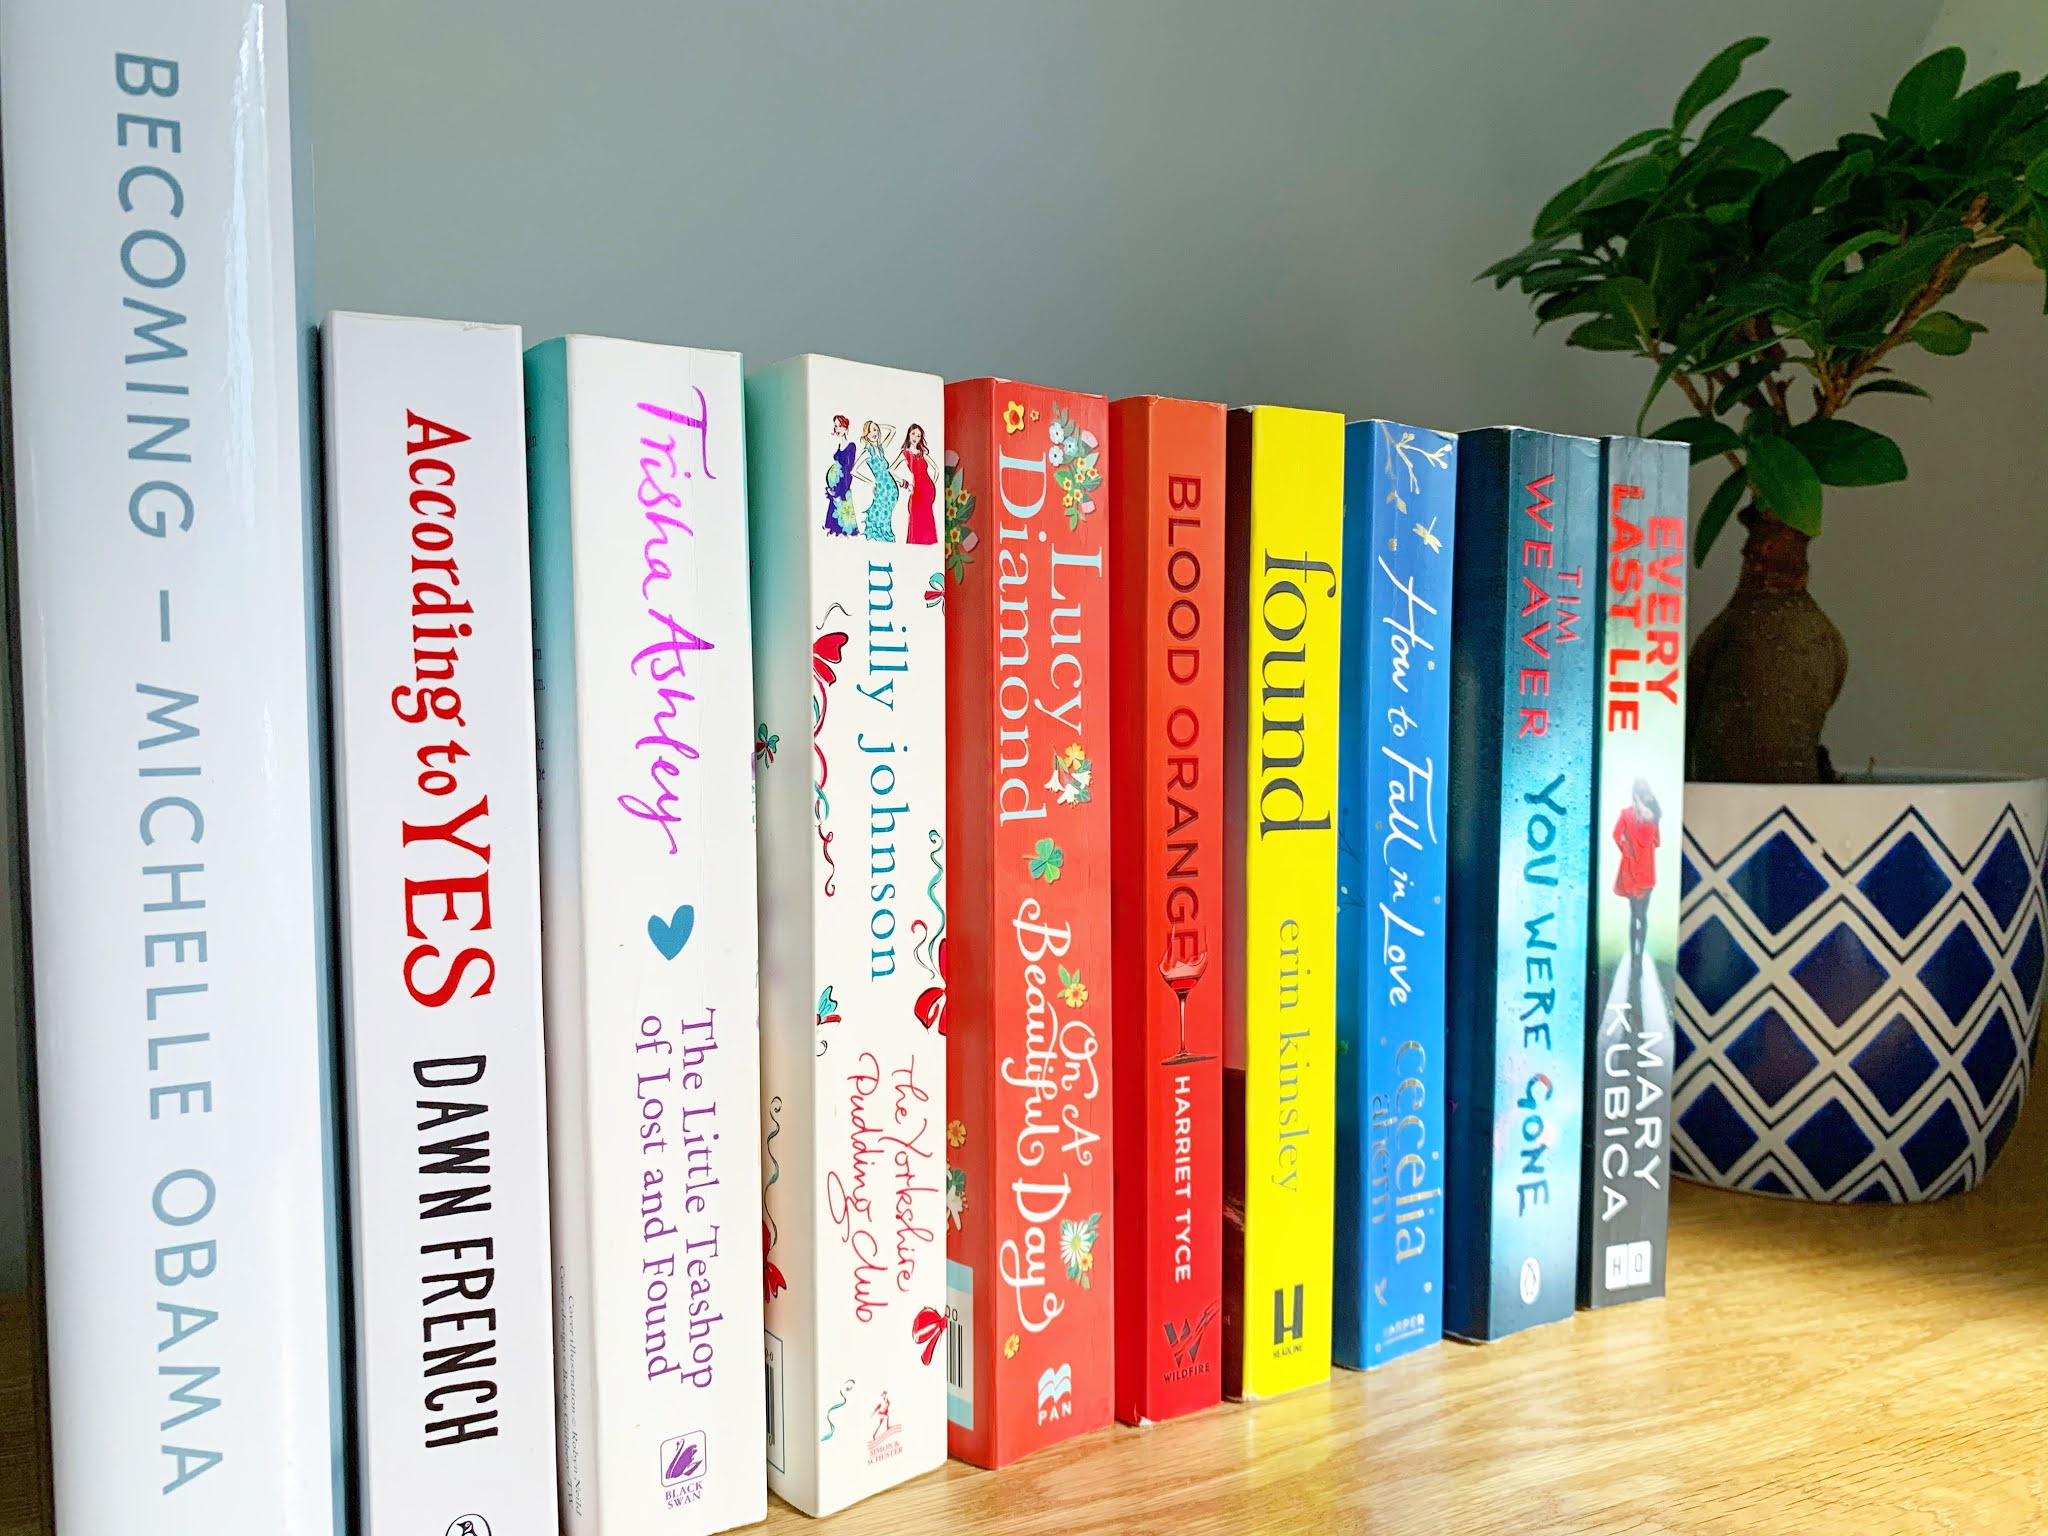 10 books lined up on a shelf on a diagonal angle